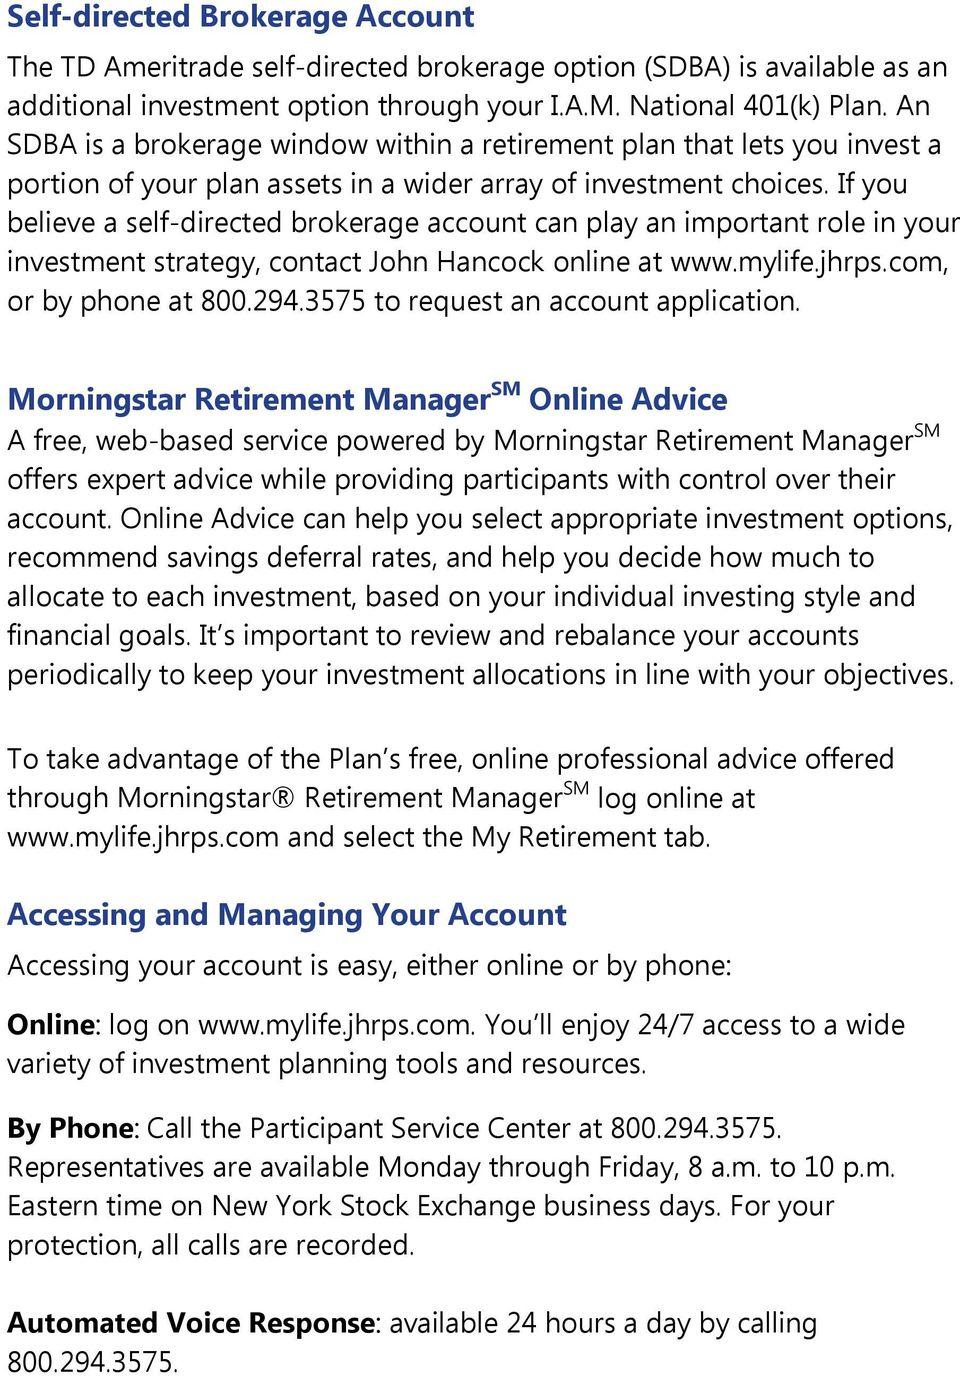 If you believe a self-directed brokerage account can play an important role in your investment strategy, contact John Hancock online at www.mylife.jhrps.com, or by phone at 800.294.